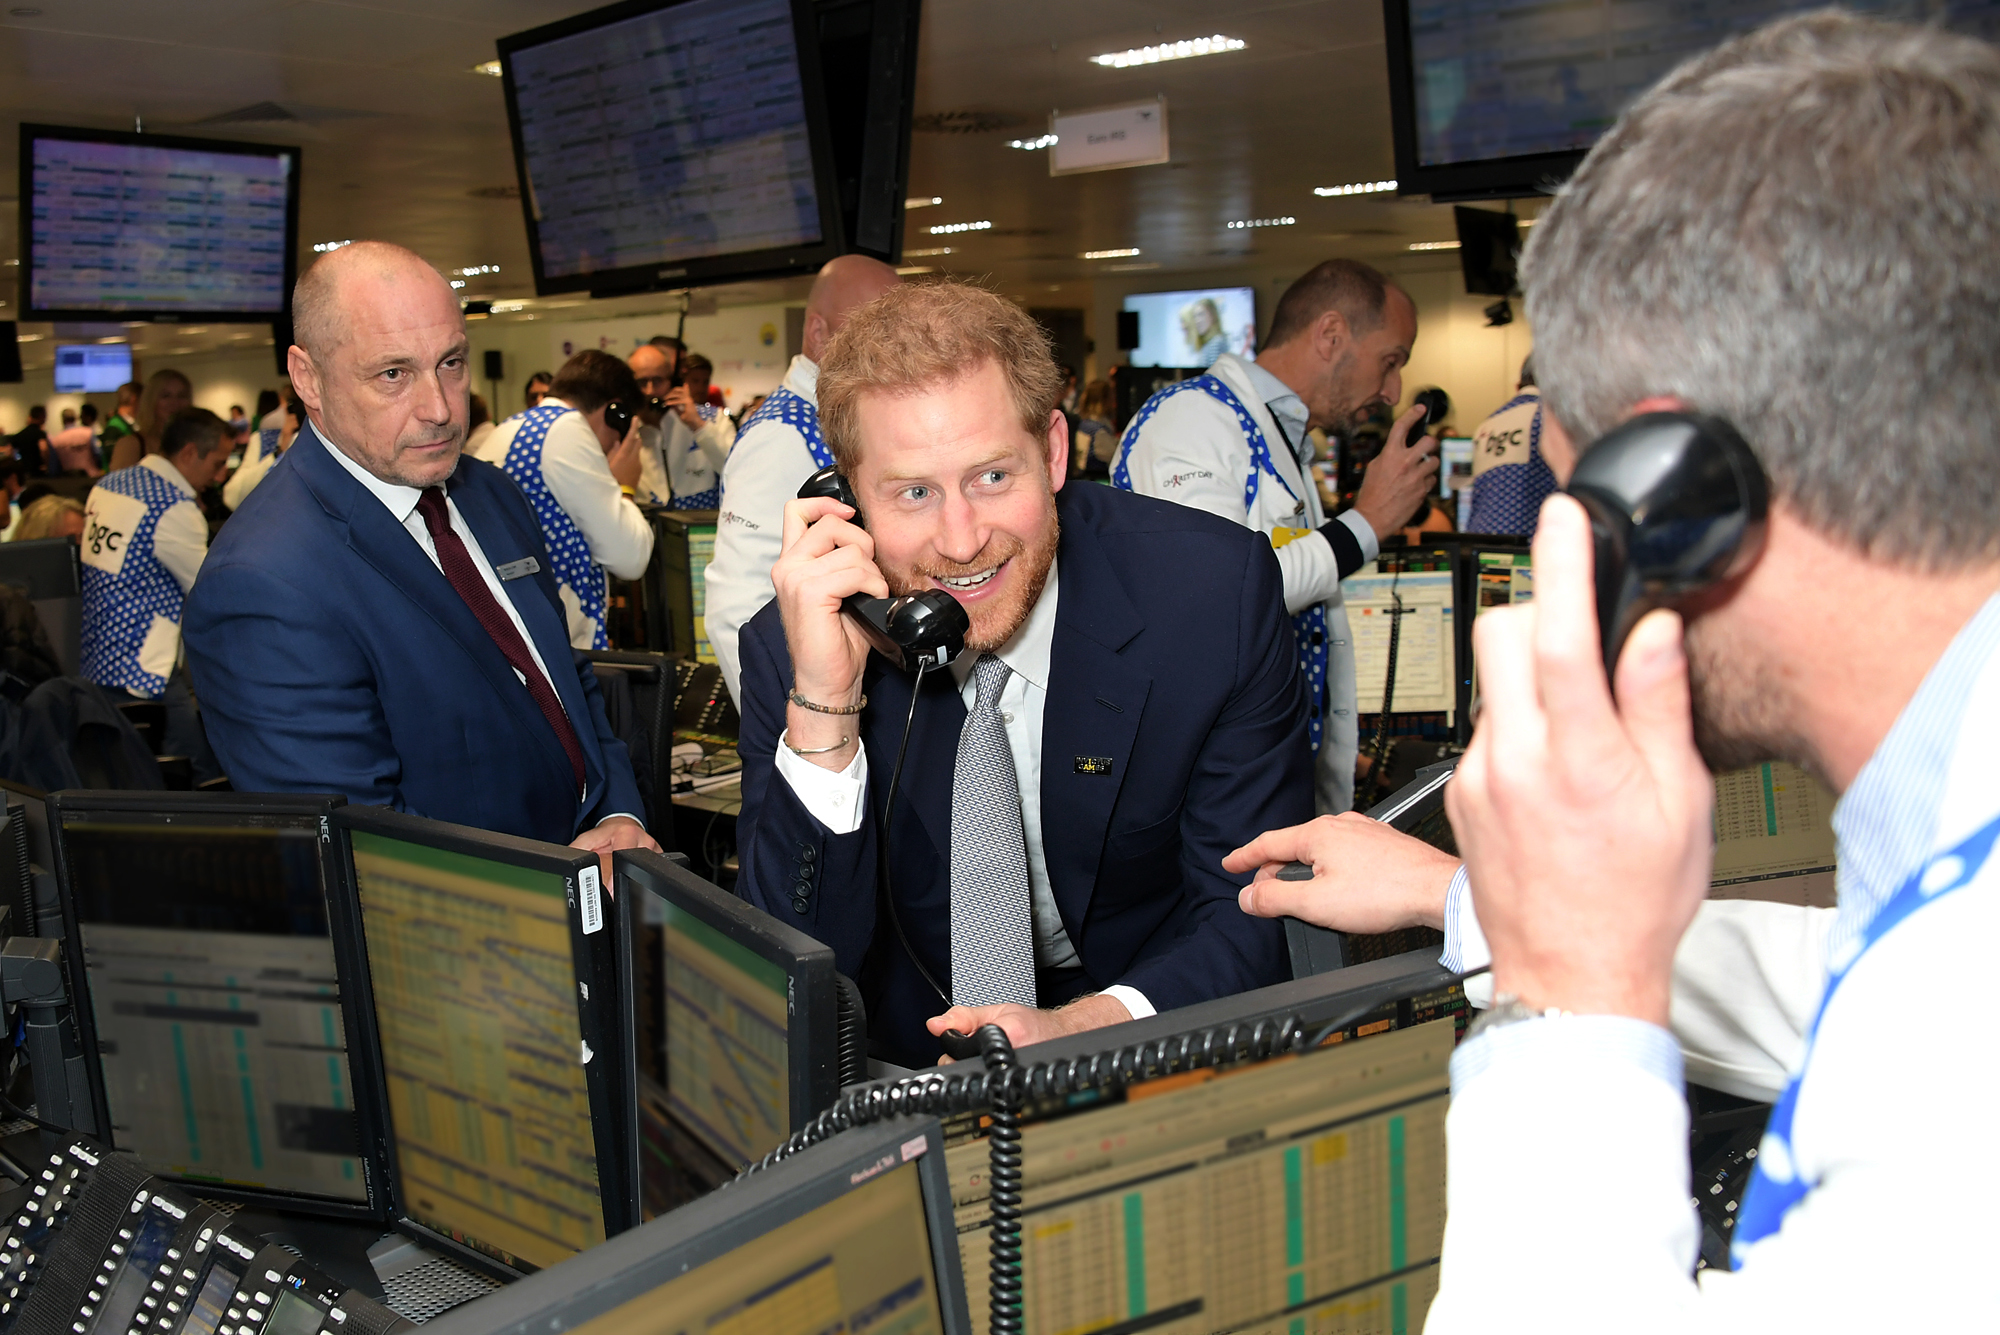 Prince Harry, The Duke of Sussex